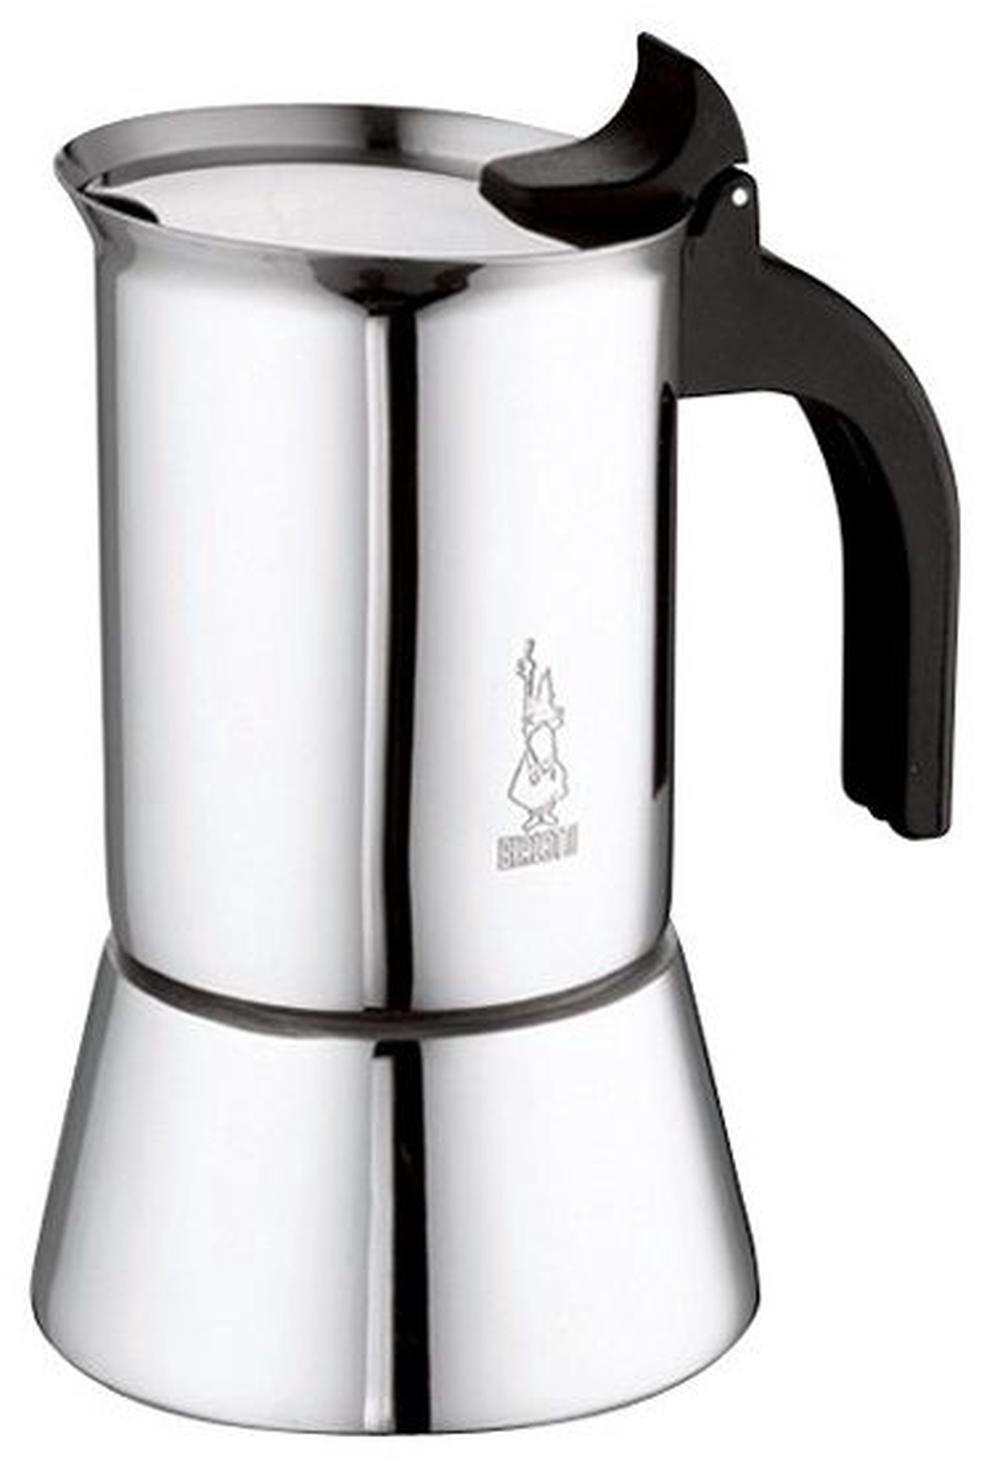 Bialetti Venus Induction Espresso Maker - 4 Cups